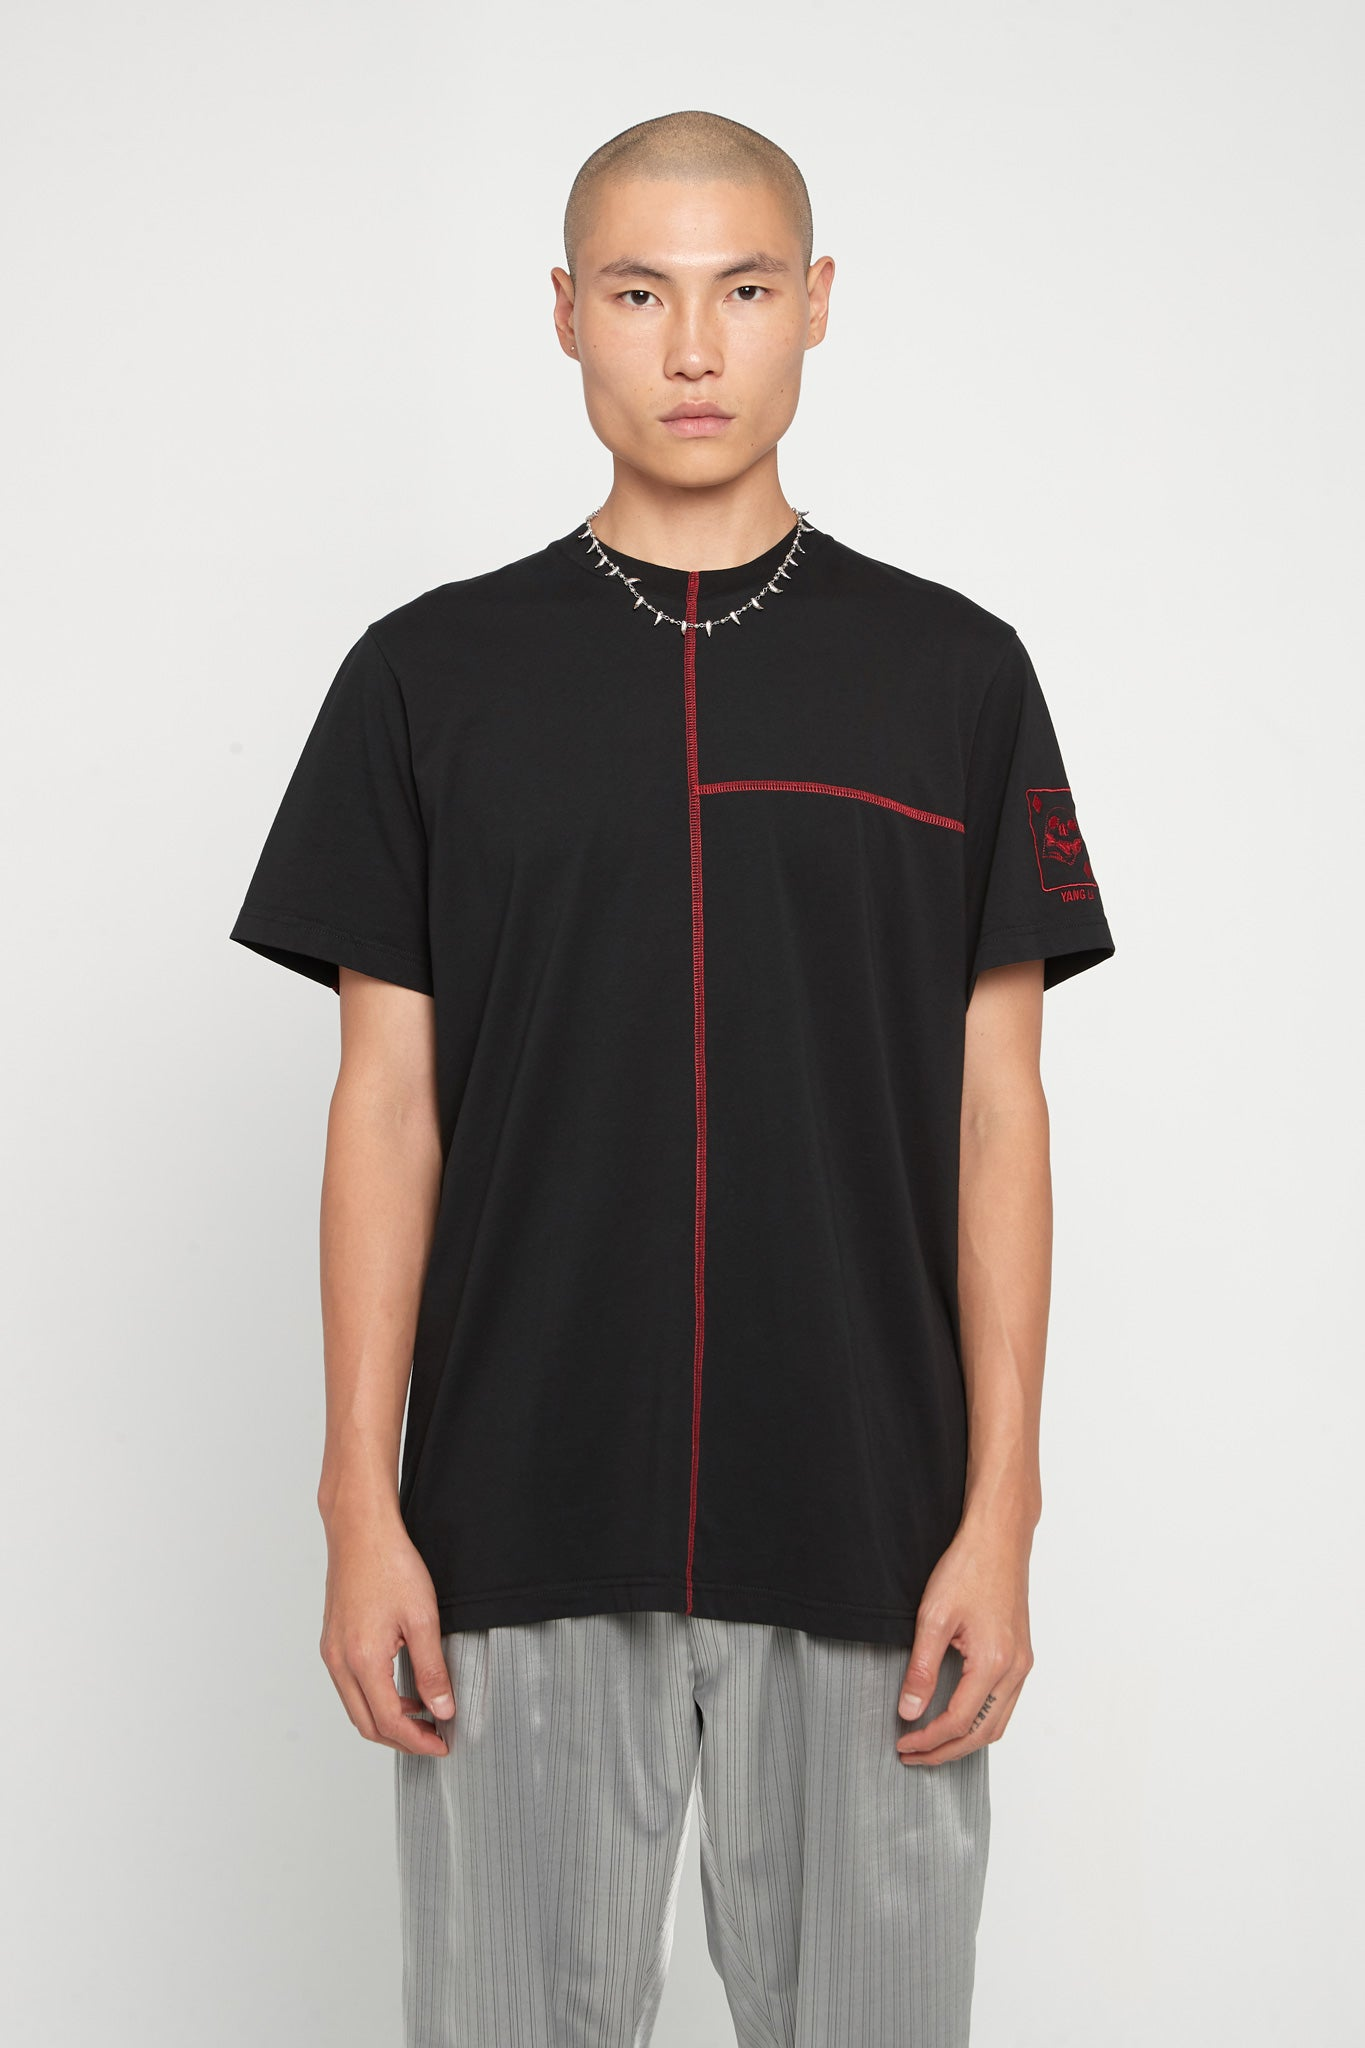 Overlock T-Shirt Black